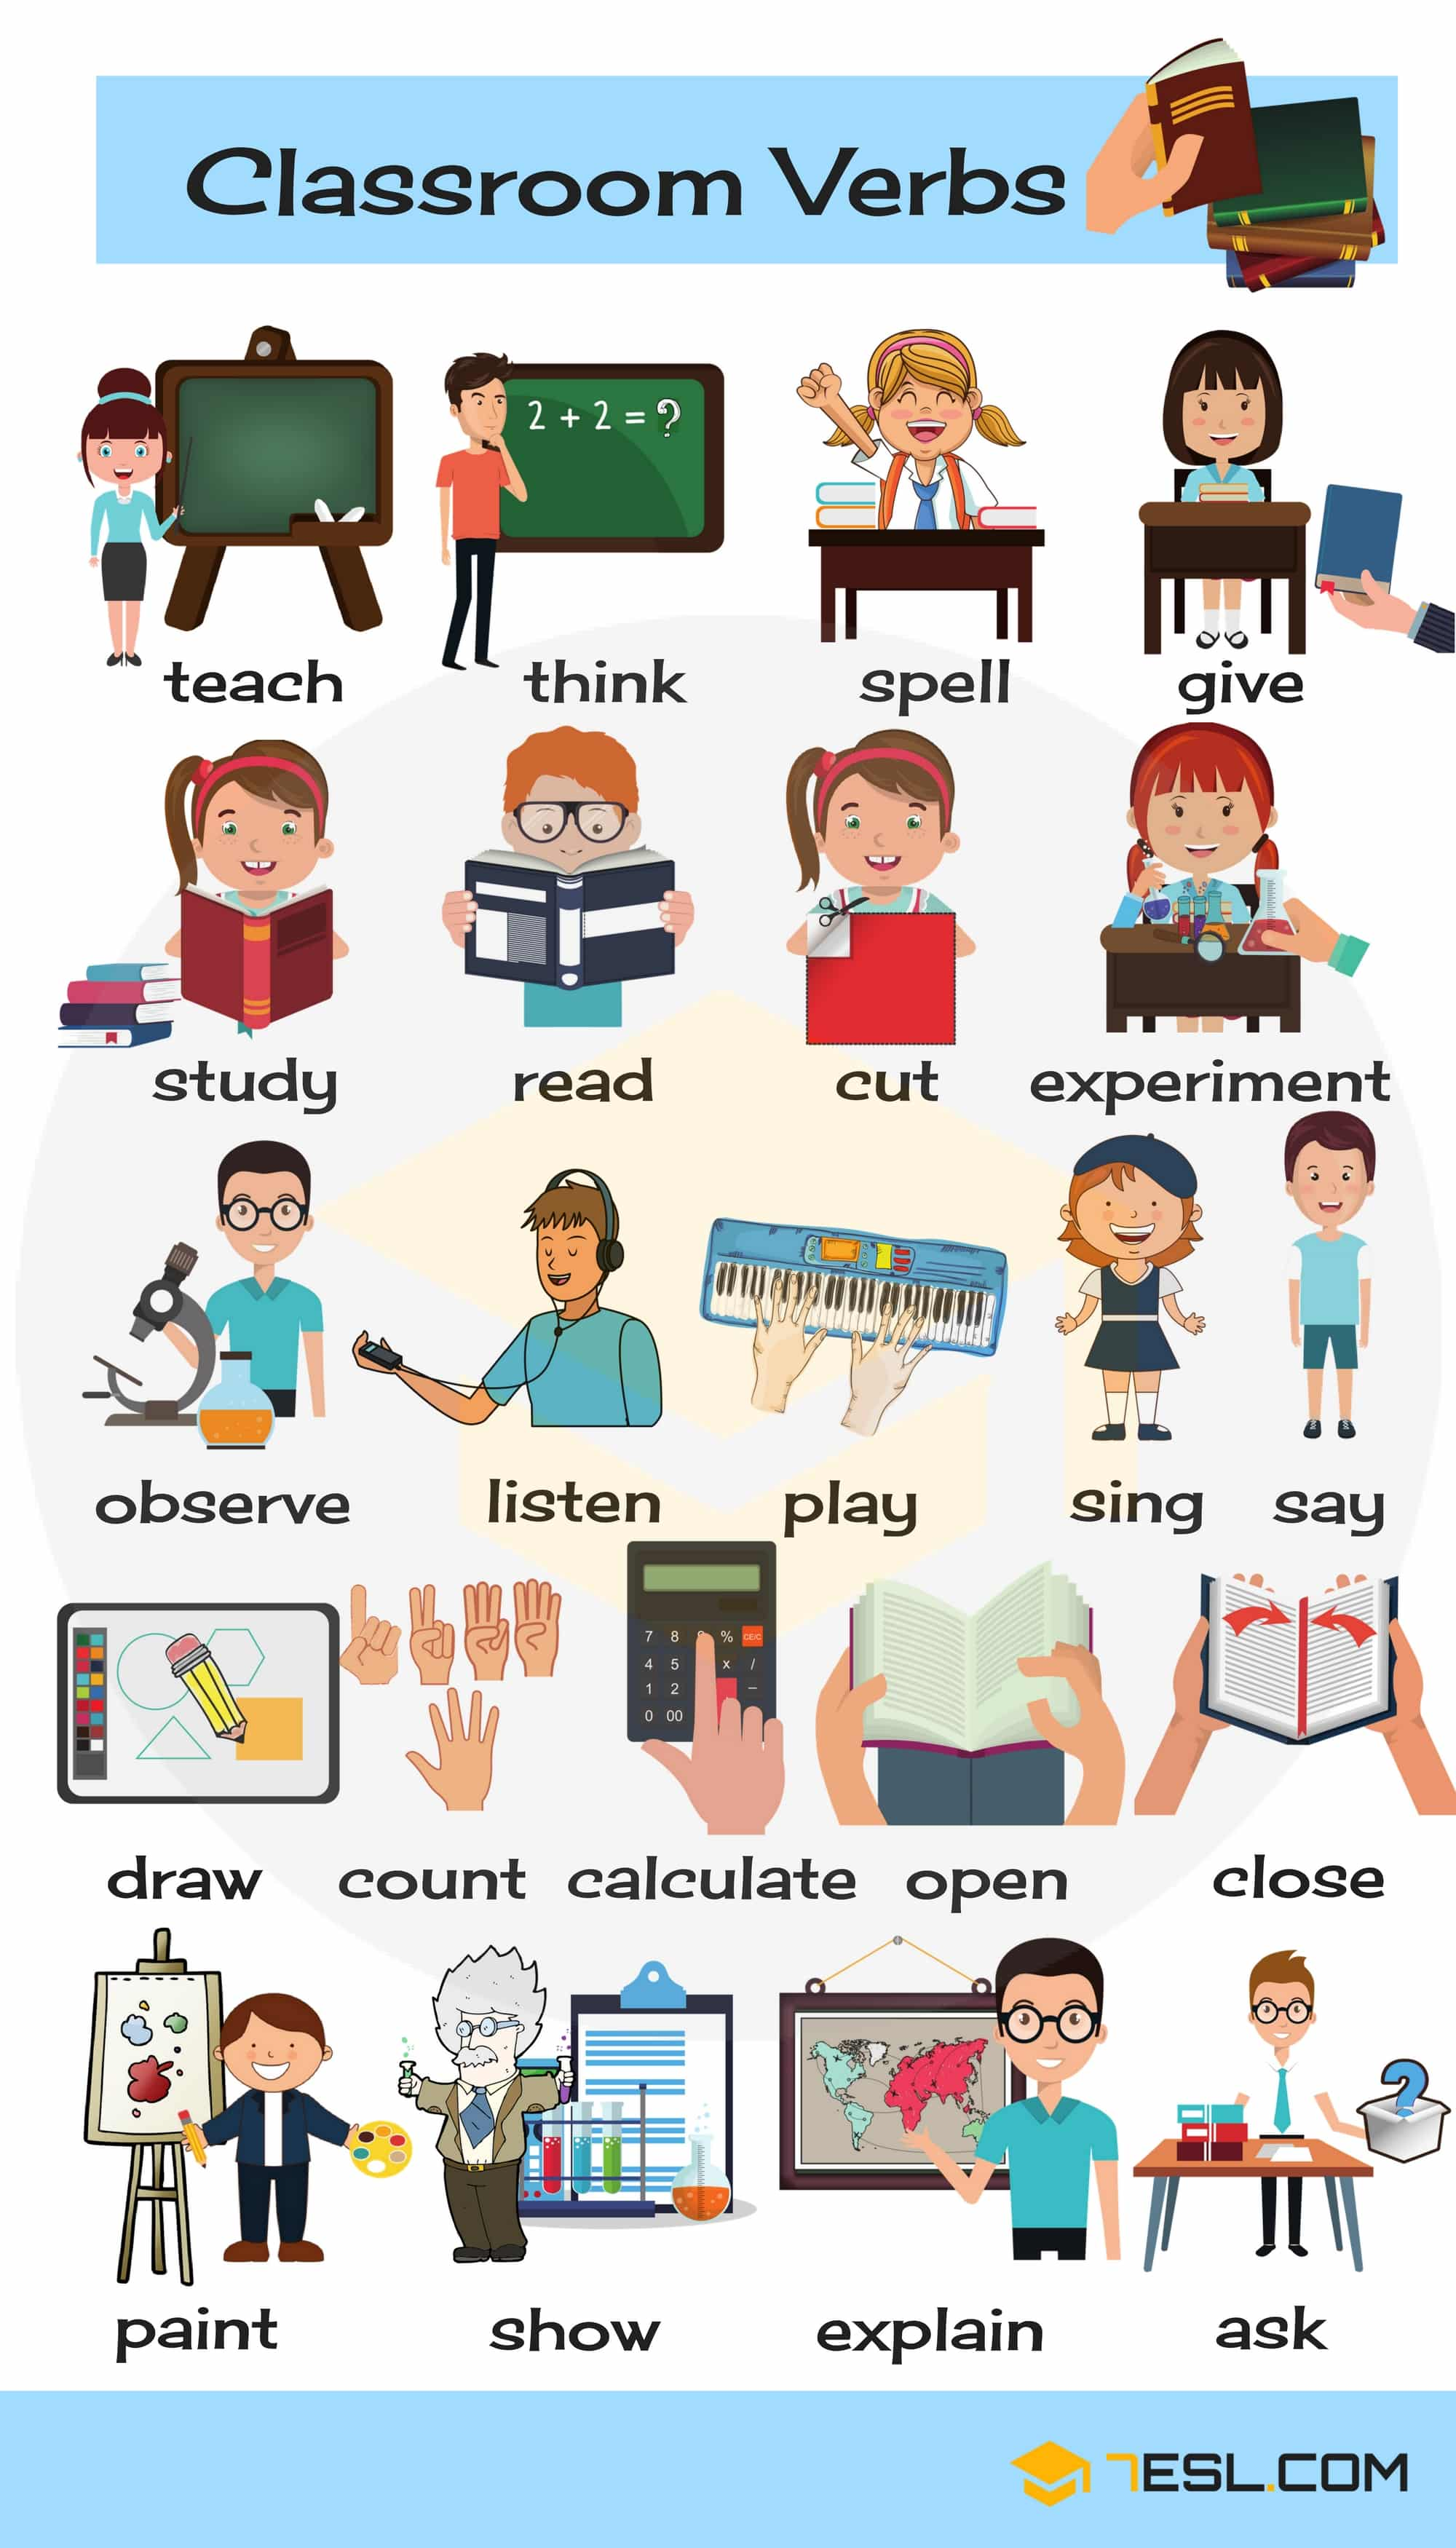 Classroom Verbs: List of School Verbs with Pictures